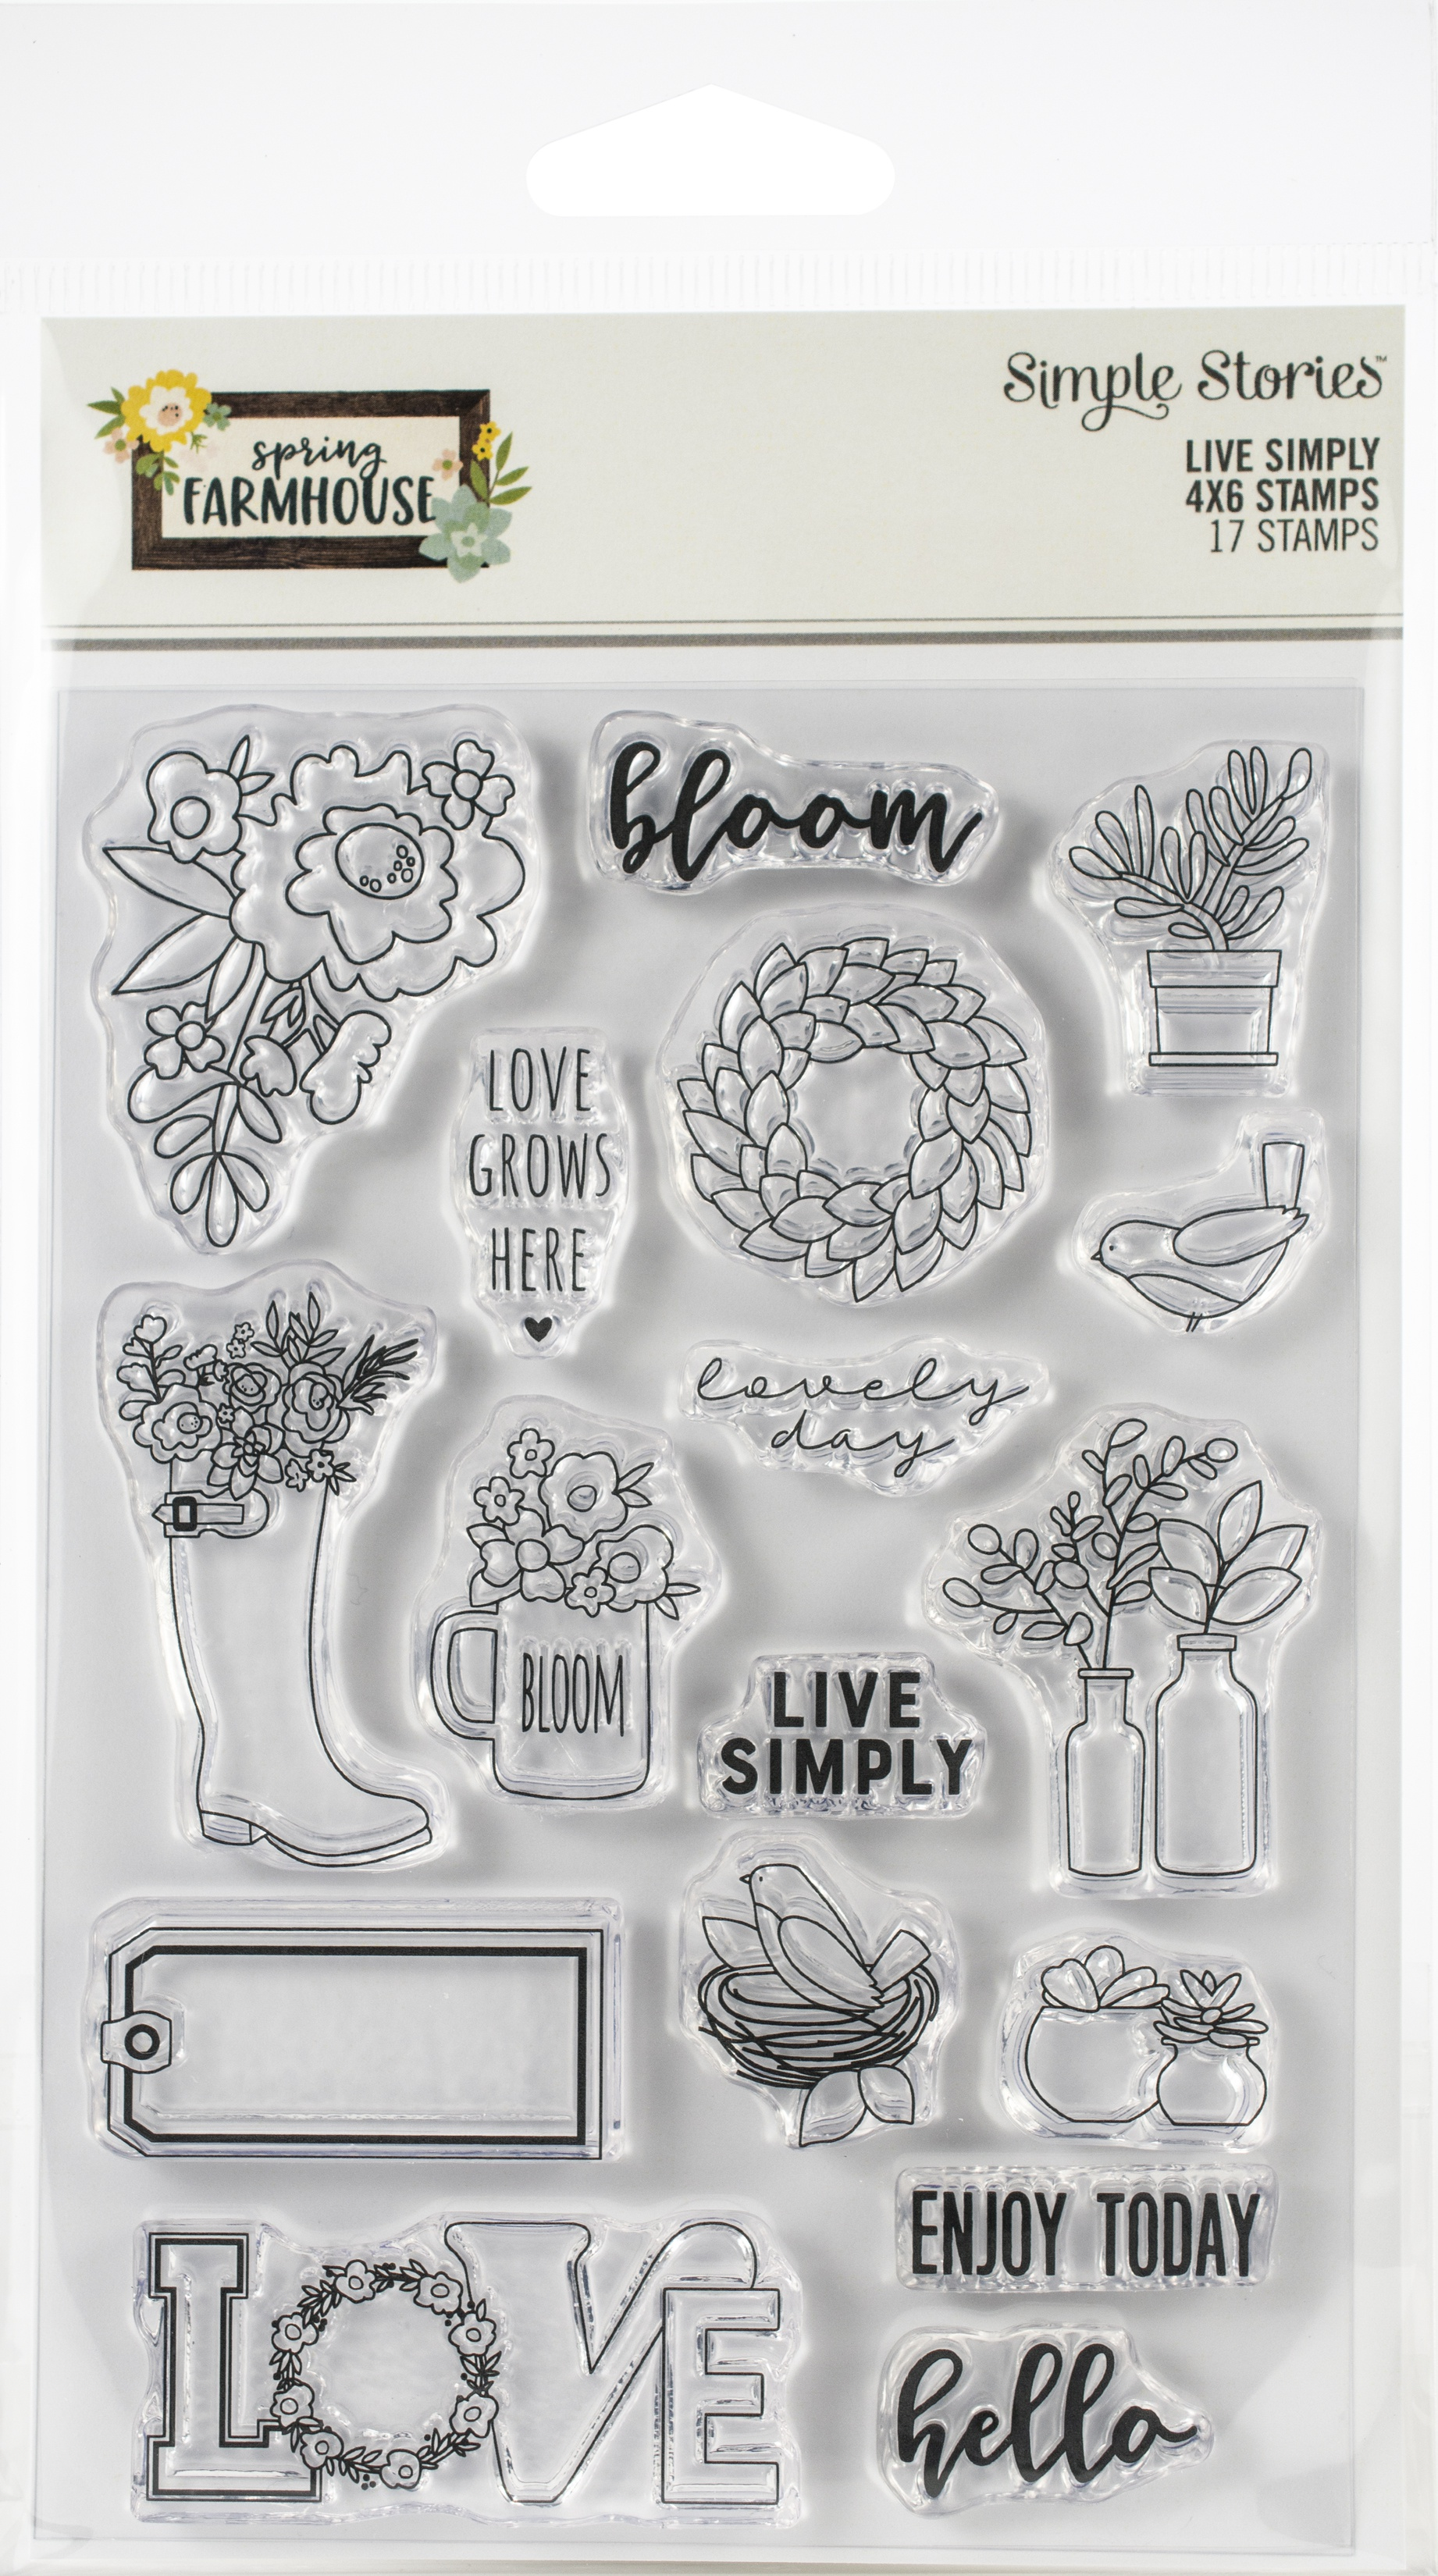 Spring Farmhouse Photopolymer Clear Stamps-Live Simply